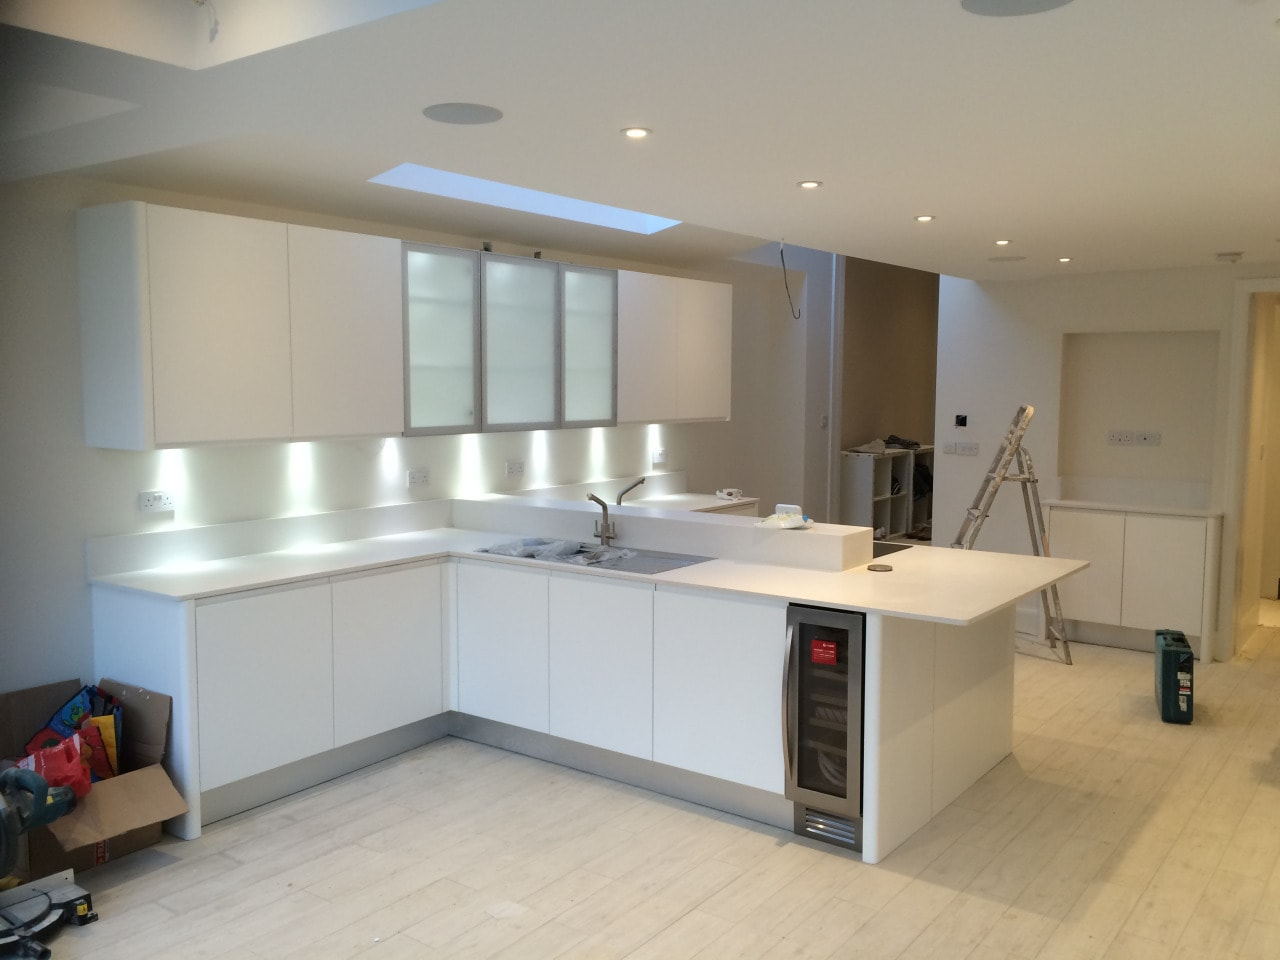 kitchen showroom wimbledon south west london j profile